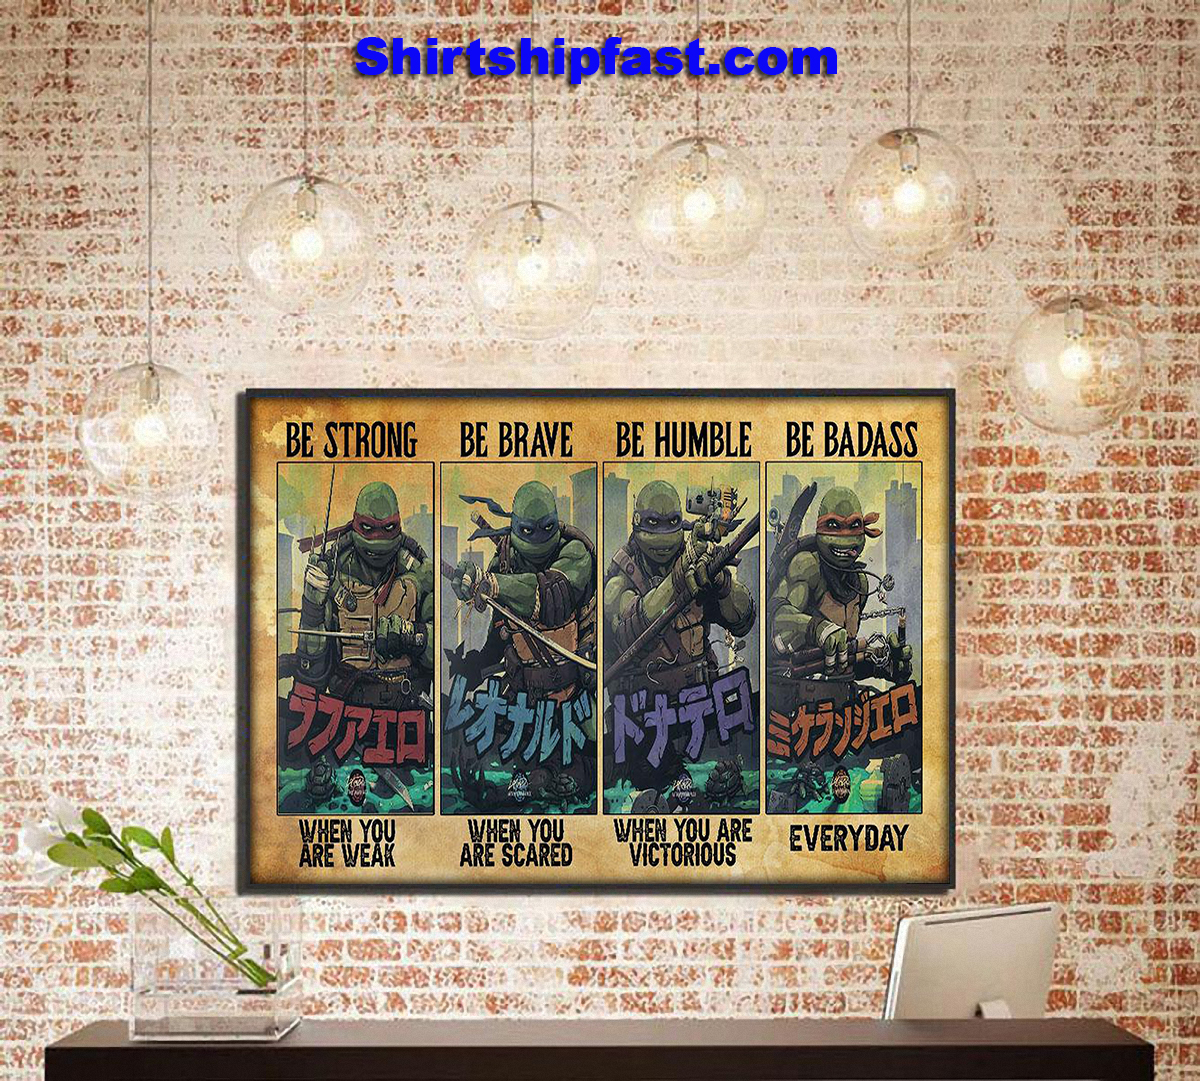 Ninja Turtles be strong be brave be humble be badass poster - Picture 3